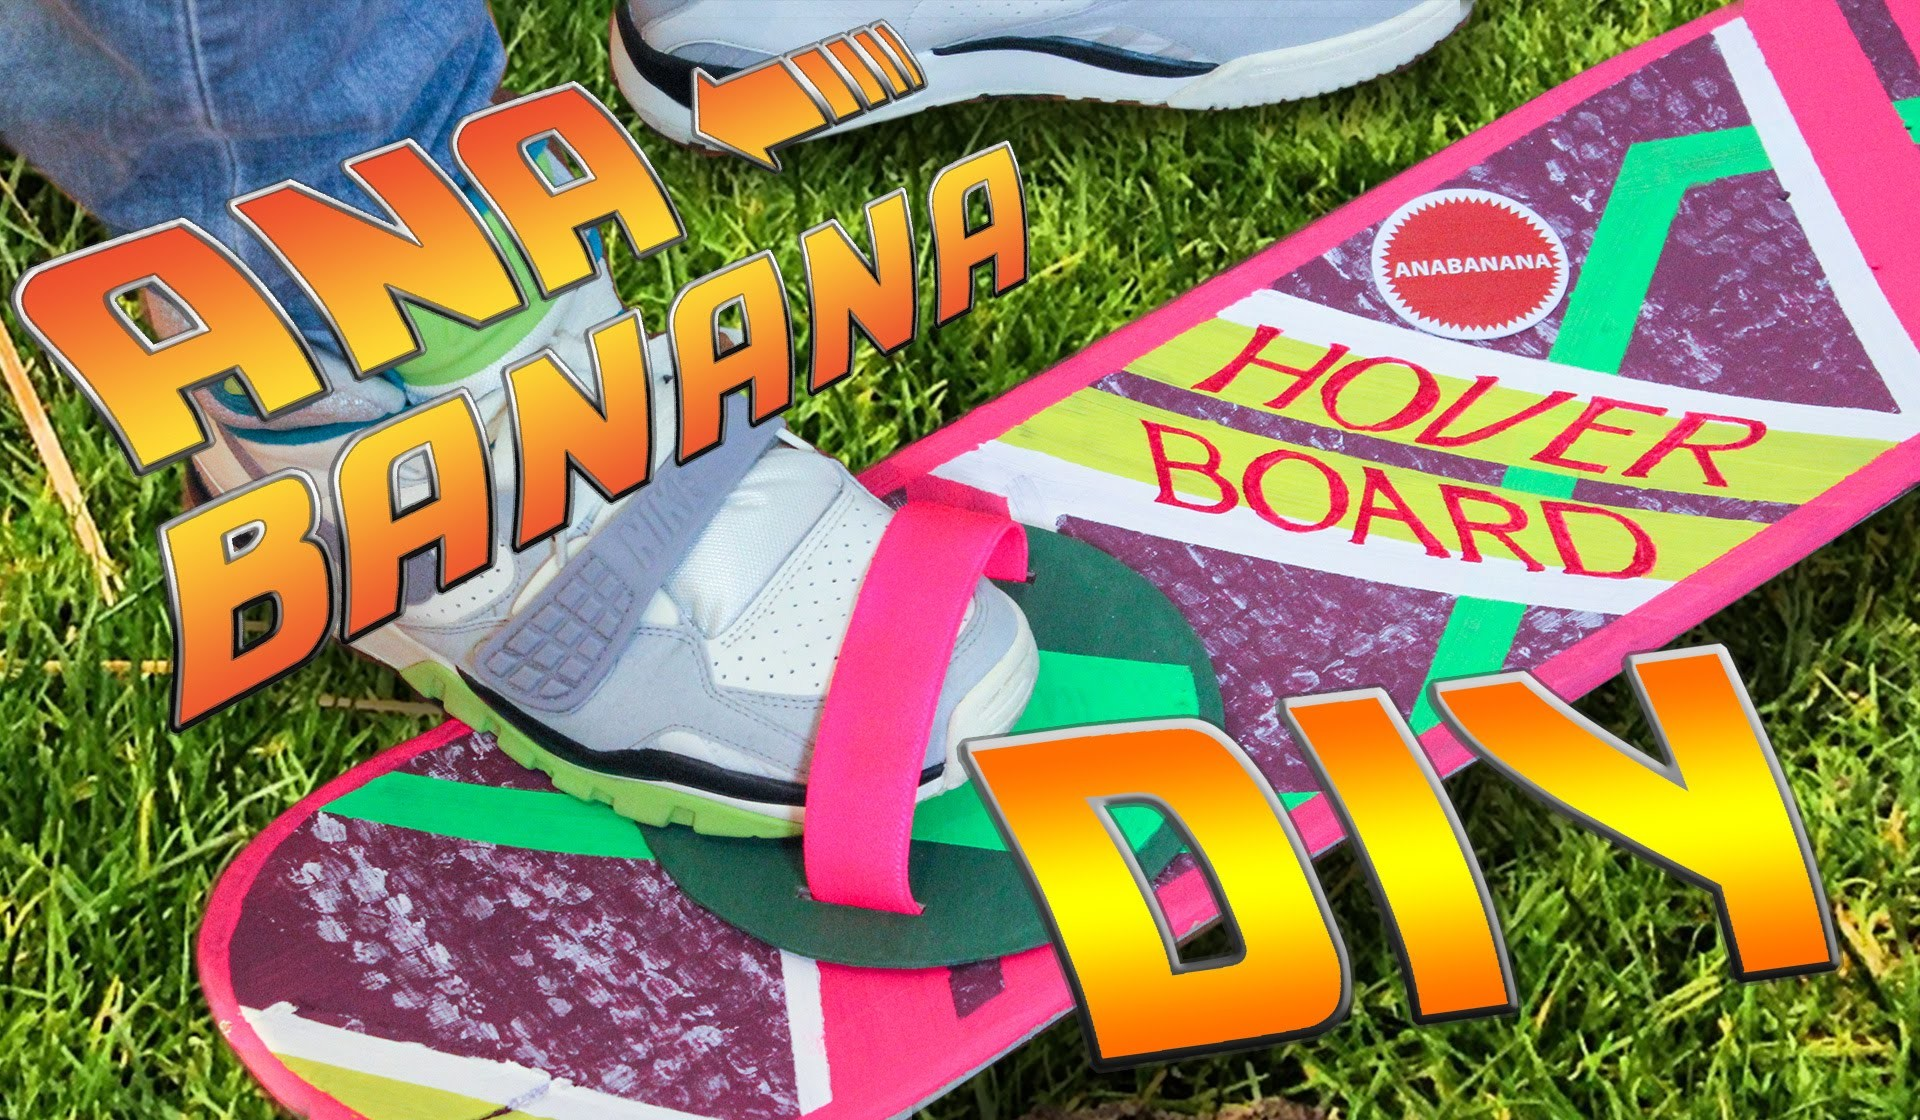 Halloween Last Minute DIY Costume   Hoverboard Tutorial   Back to the Future